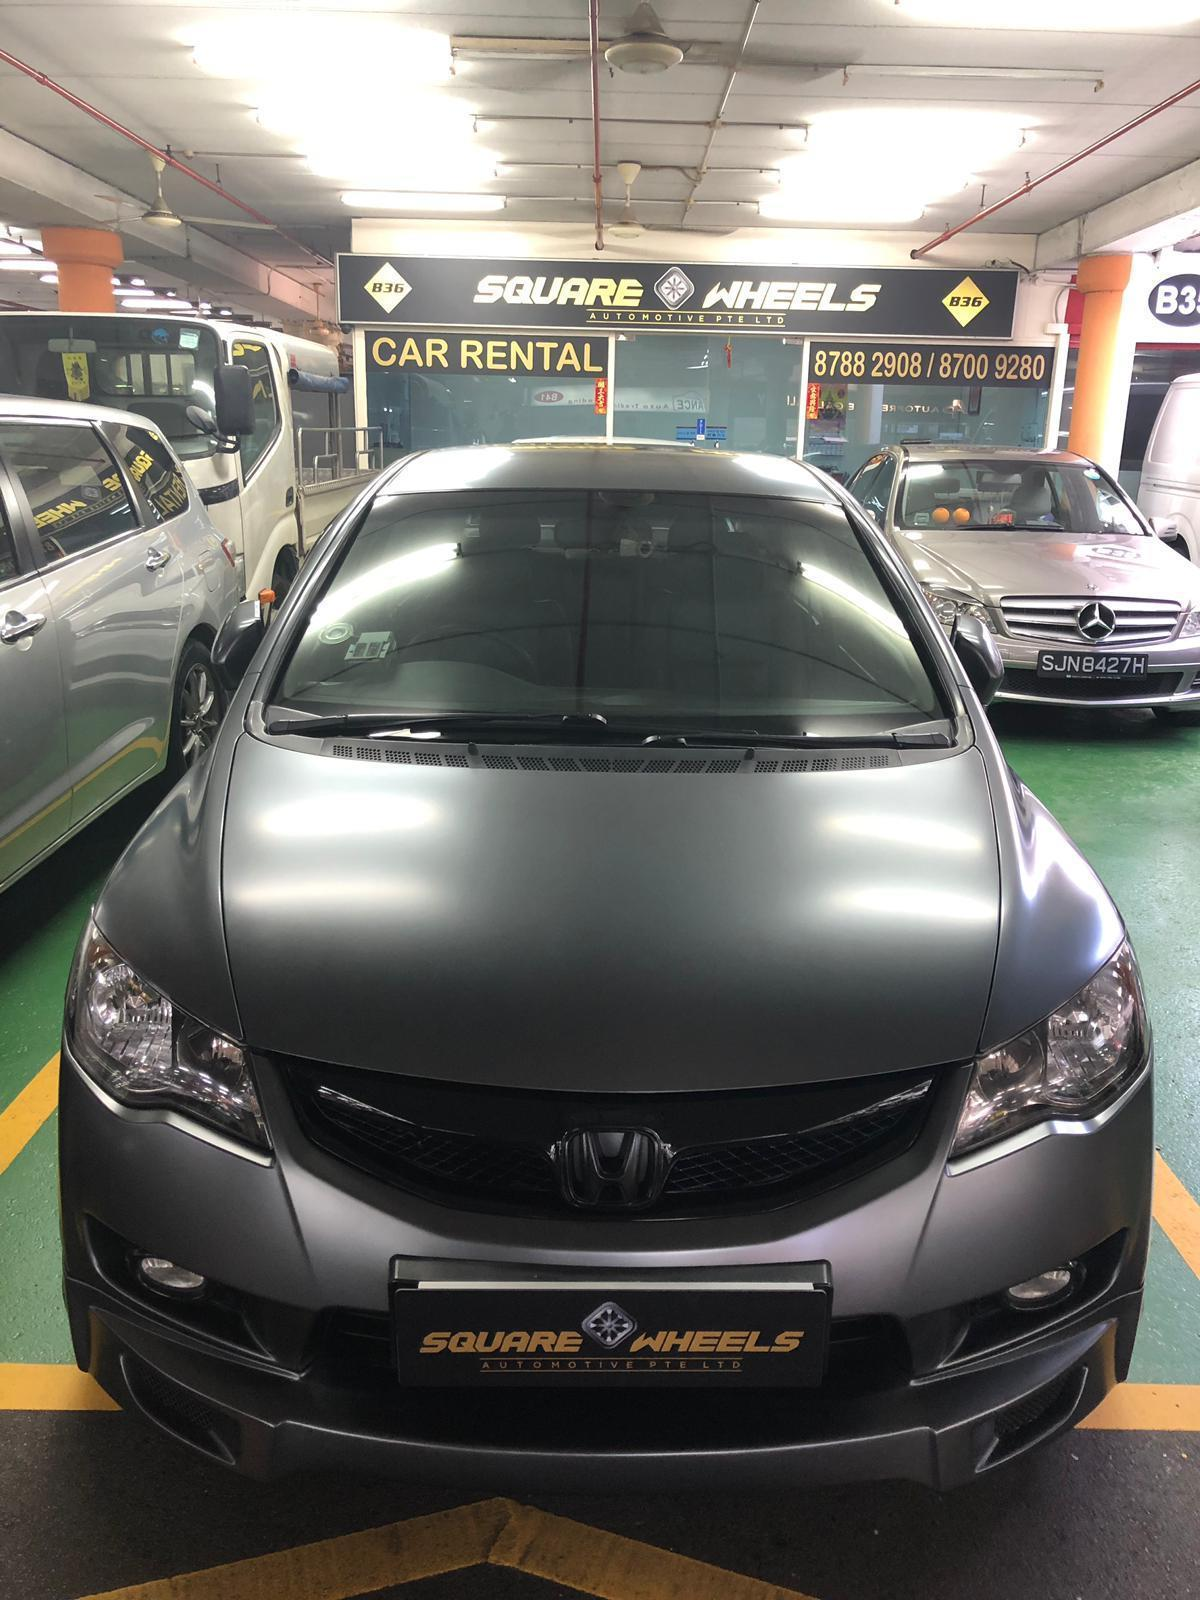 Sporty Civic For Daily Rental!! No Deposit!!